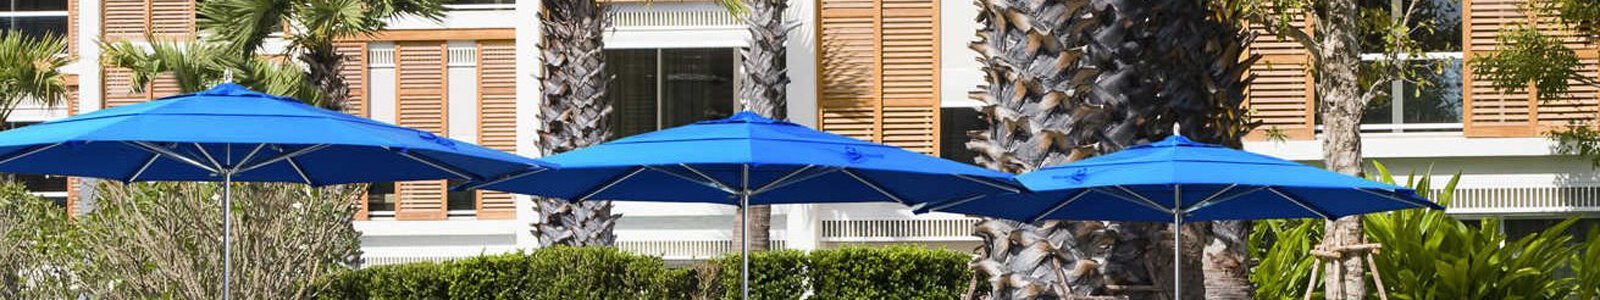 California Umbrella Sale on Outdoor Patio Umbrellas Banner